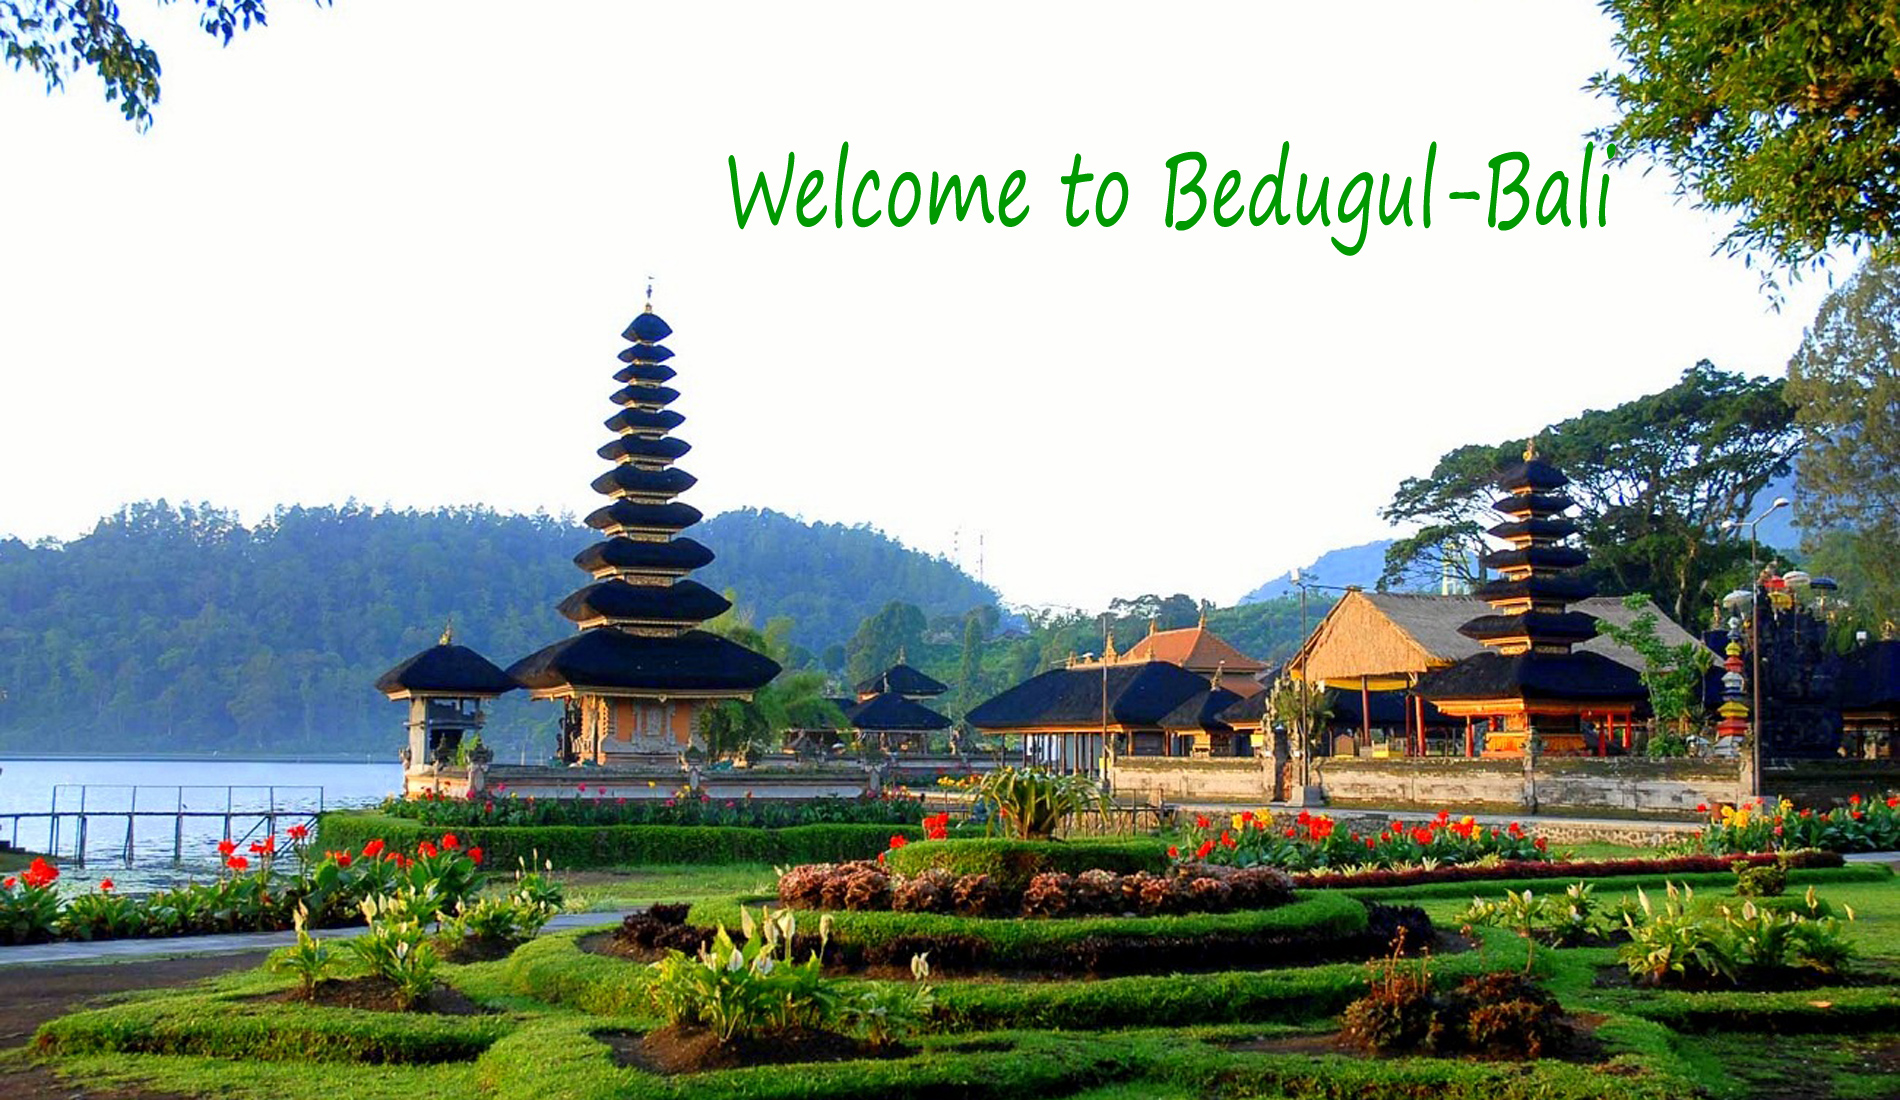 Bedugul Bali - Things To Do in Bali Tours Activities